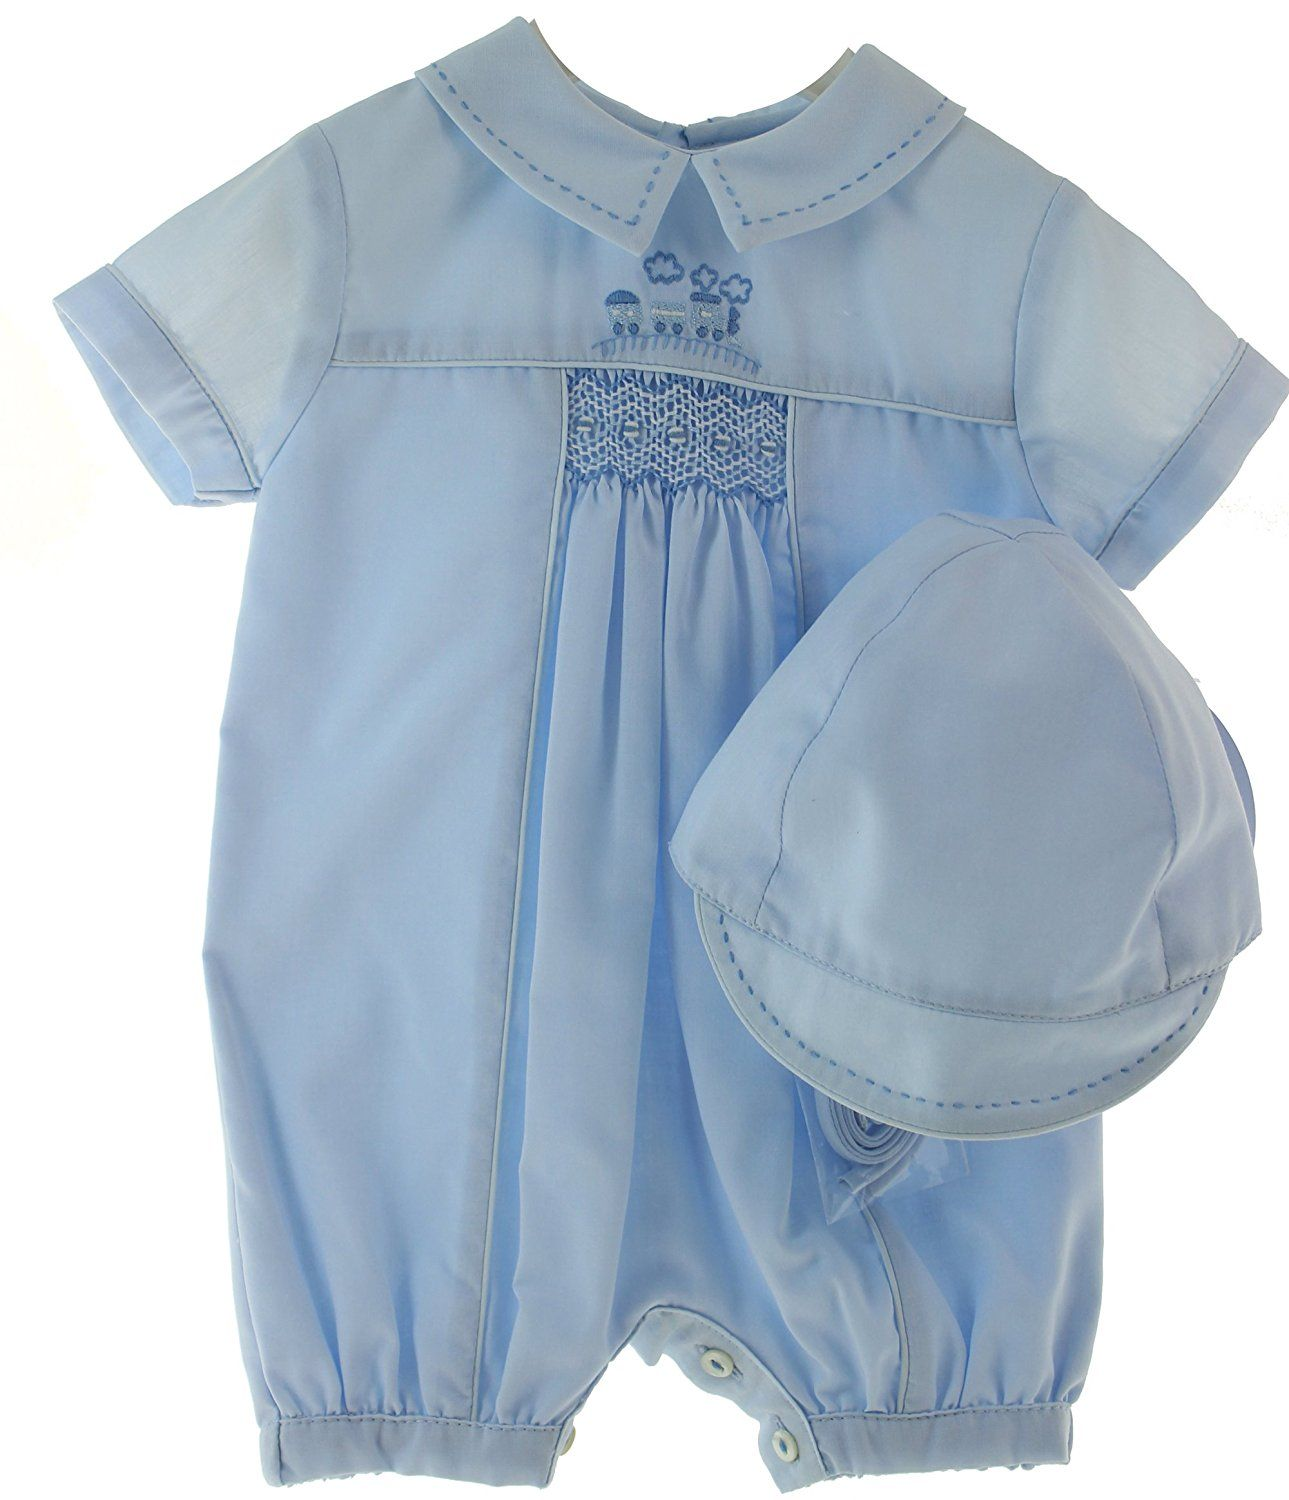 e30f59cda13 Amazon.com  Newborn Boys Blue Take Home Romper Outfit with Train   Hat  Layette Set Sarah Louise (NB)  Clothing